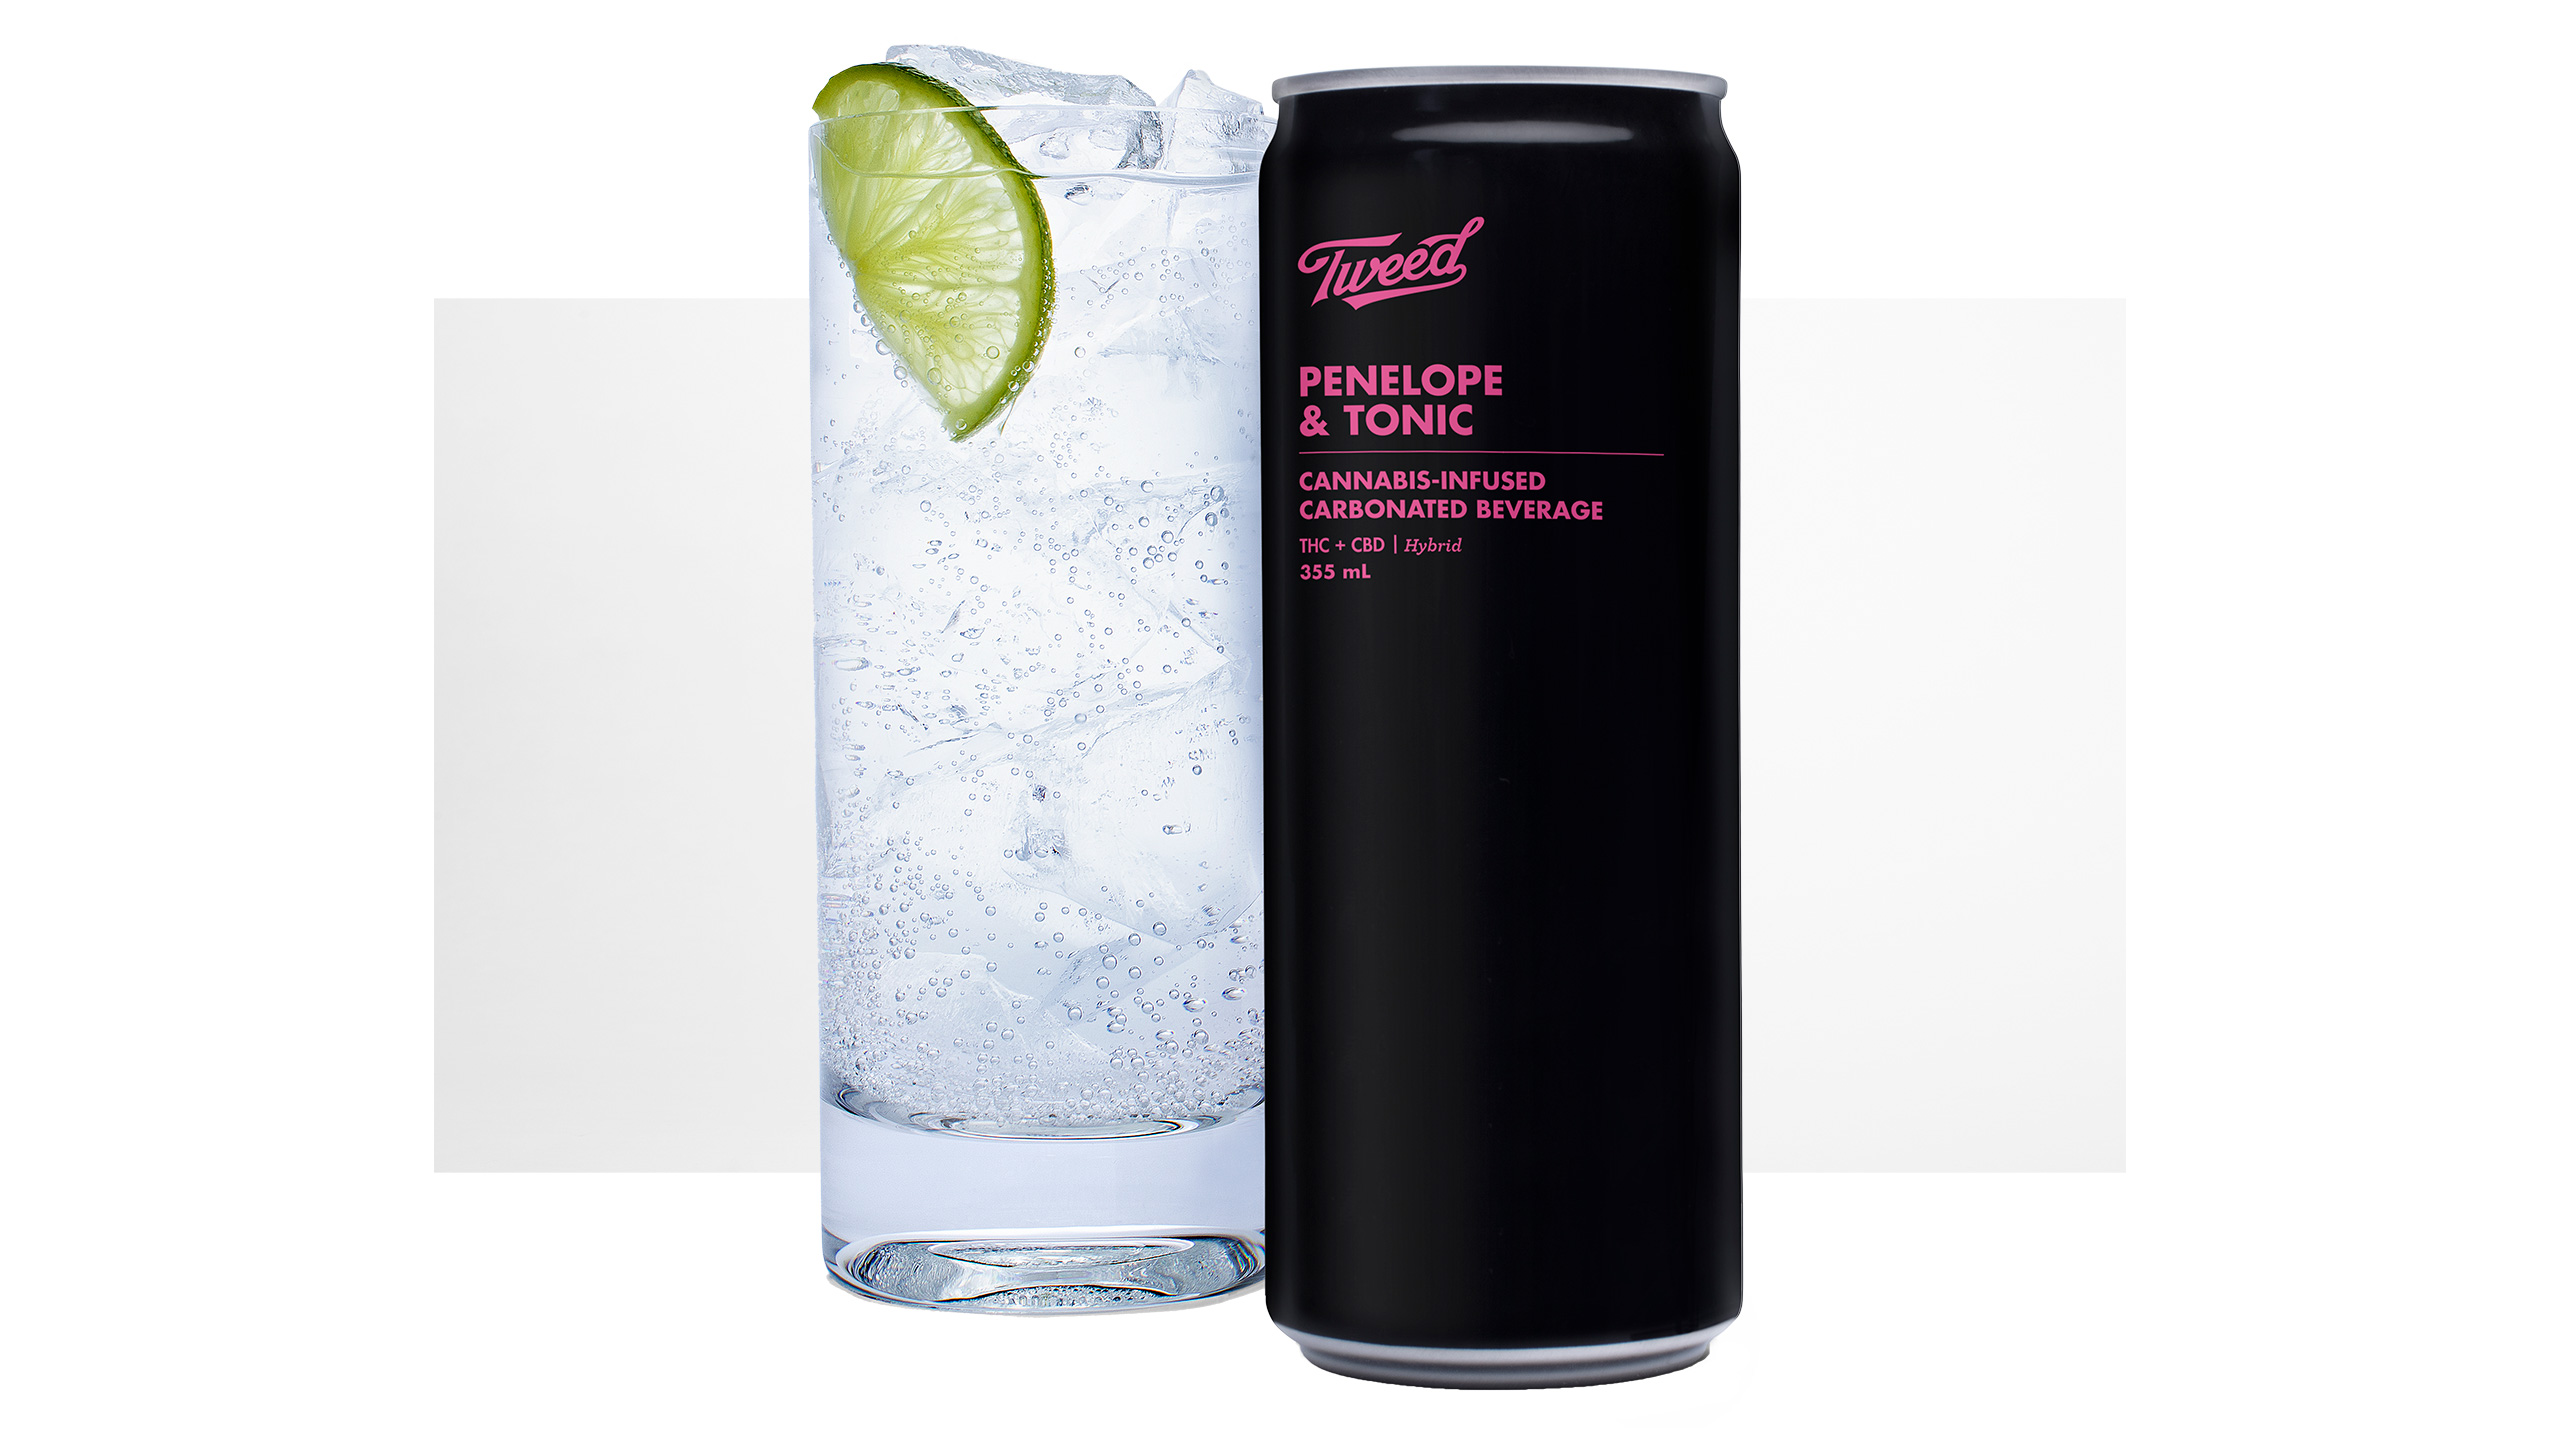 A can of Tweed Penelope and Tonic cannabis-infused carbonated drink with a glass of tonic